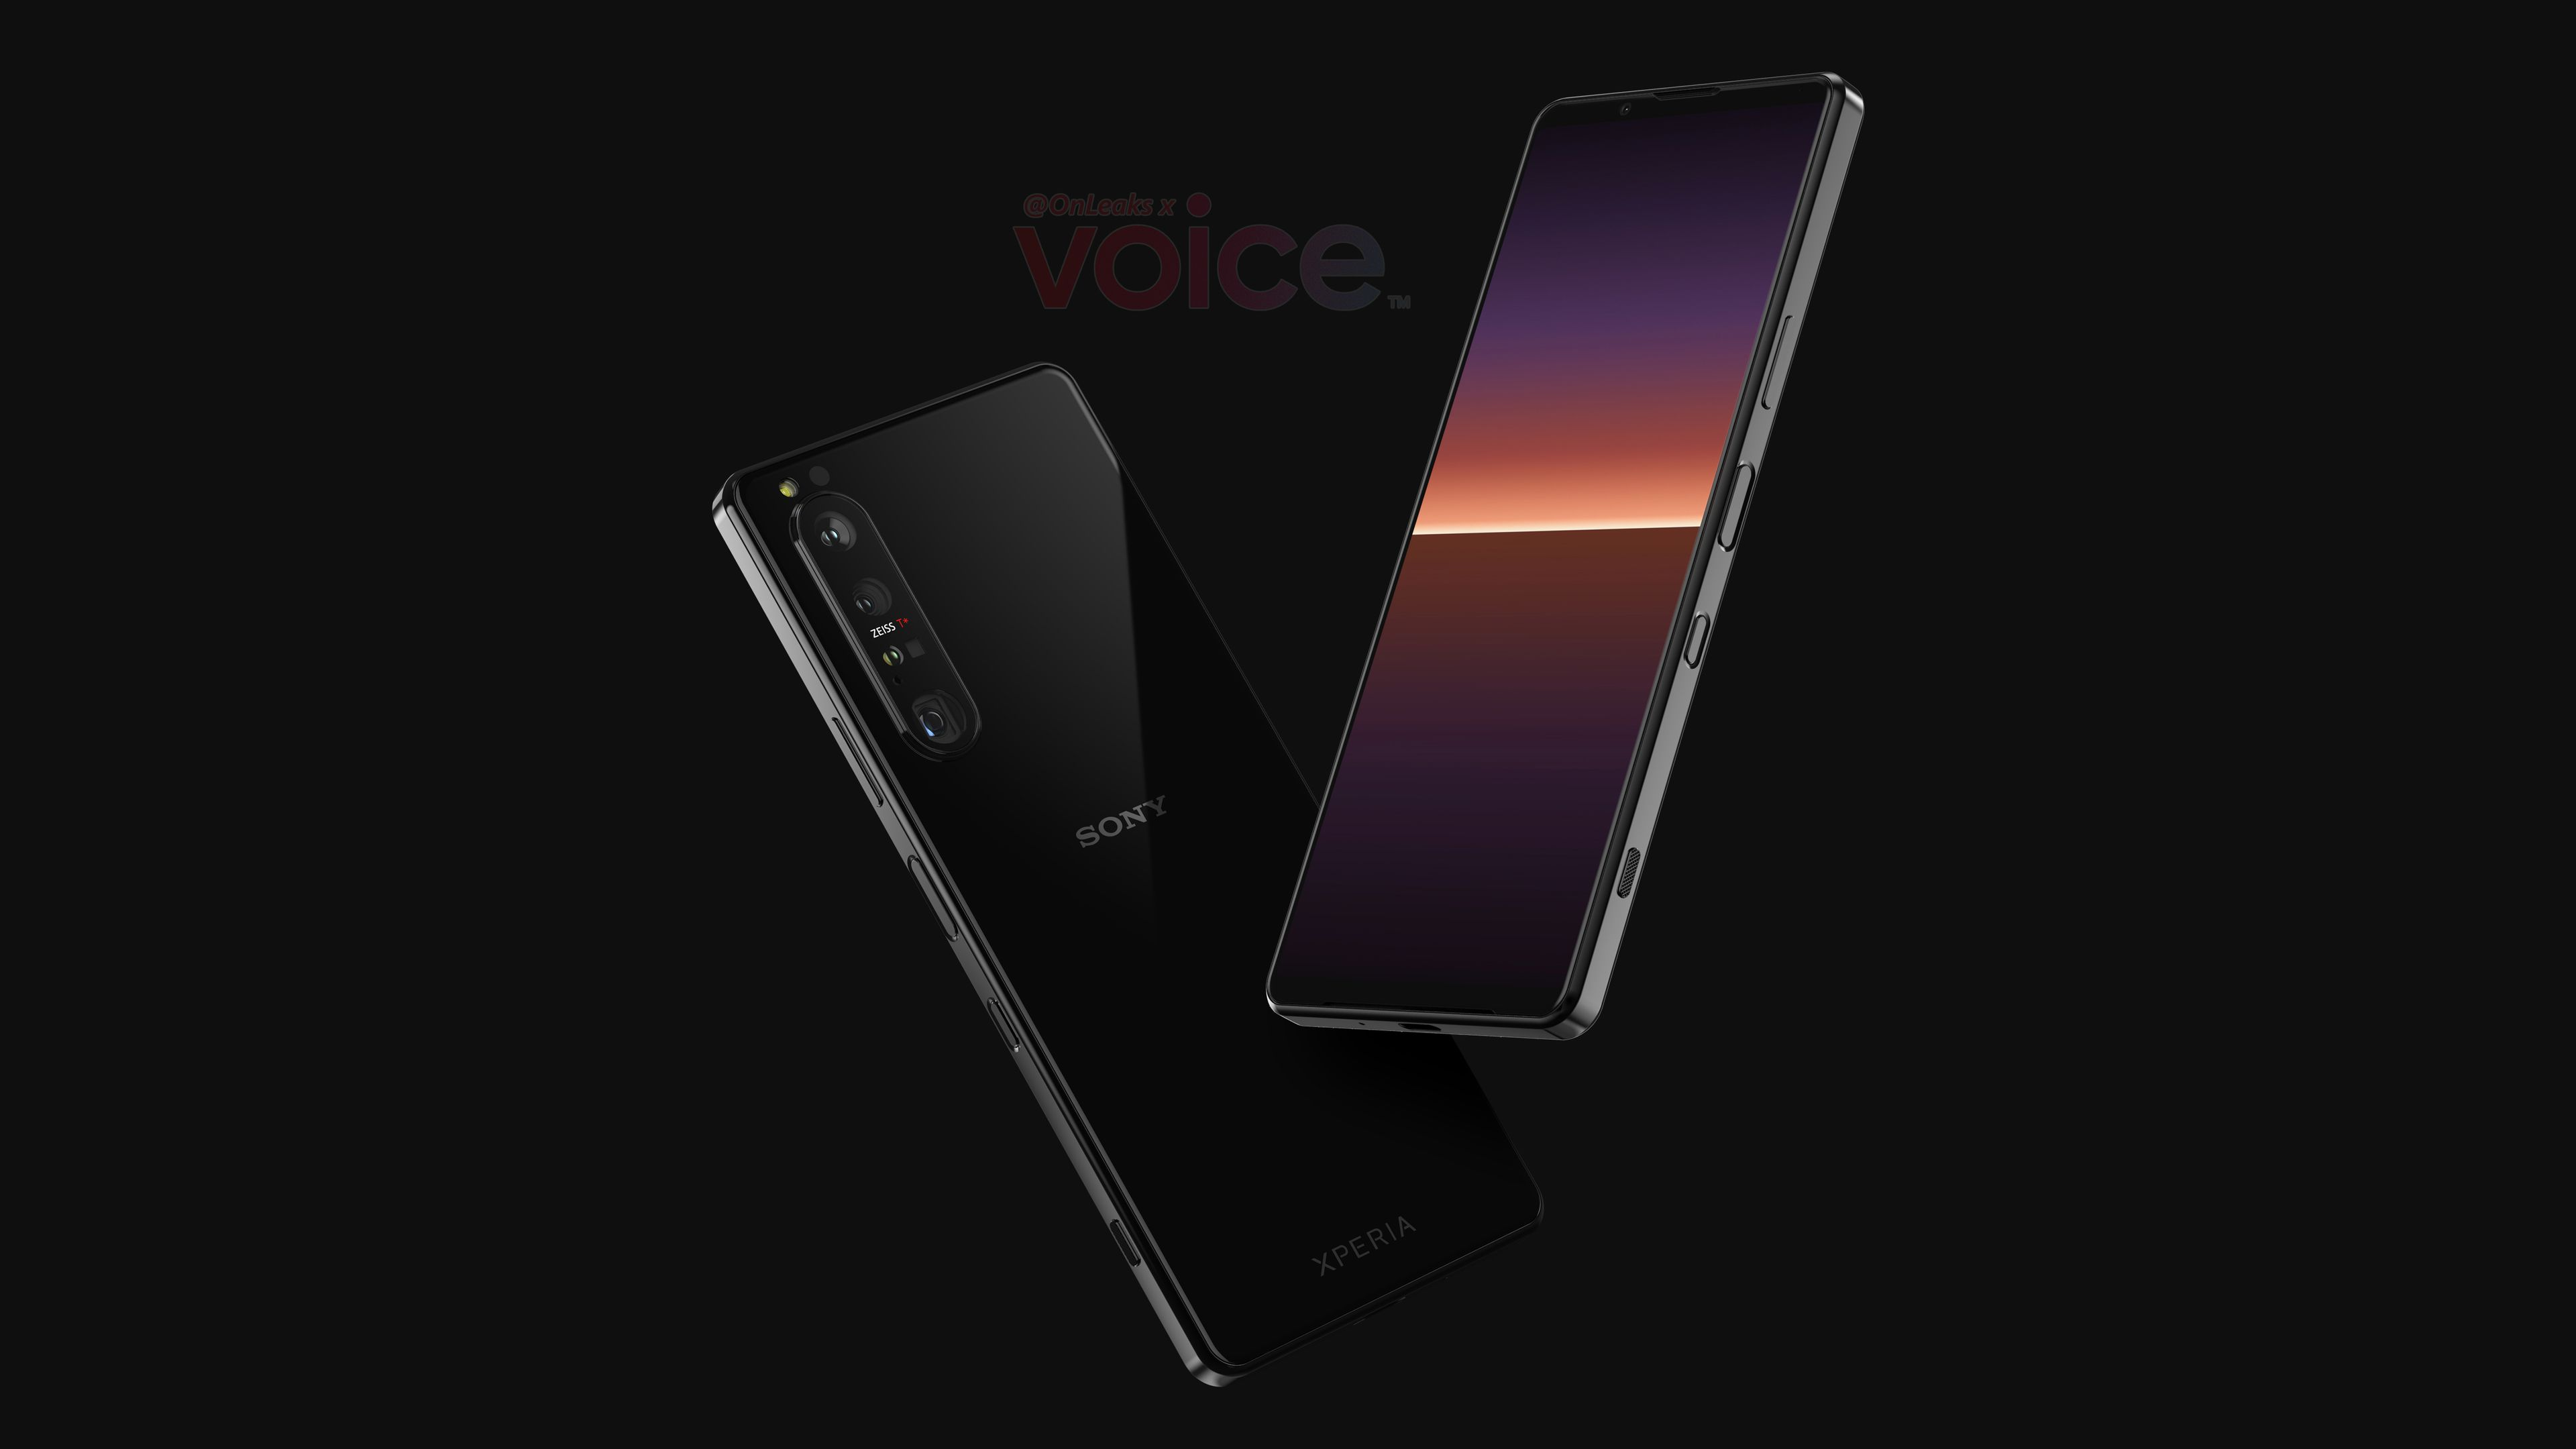 upcoming-flagship-sony-xperia-1-iii-leaks-in-renders-includes-periscope-camera